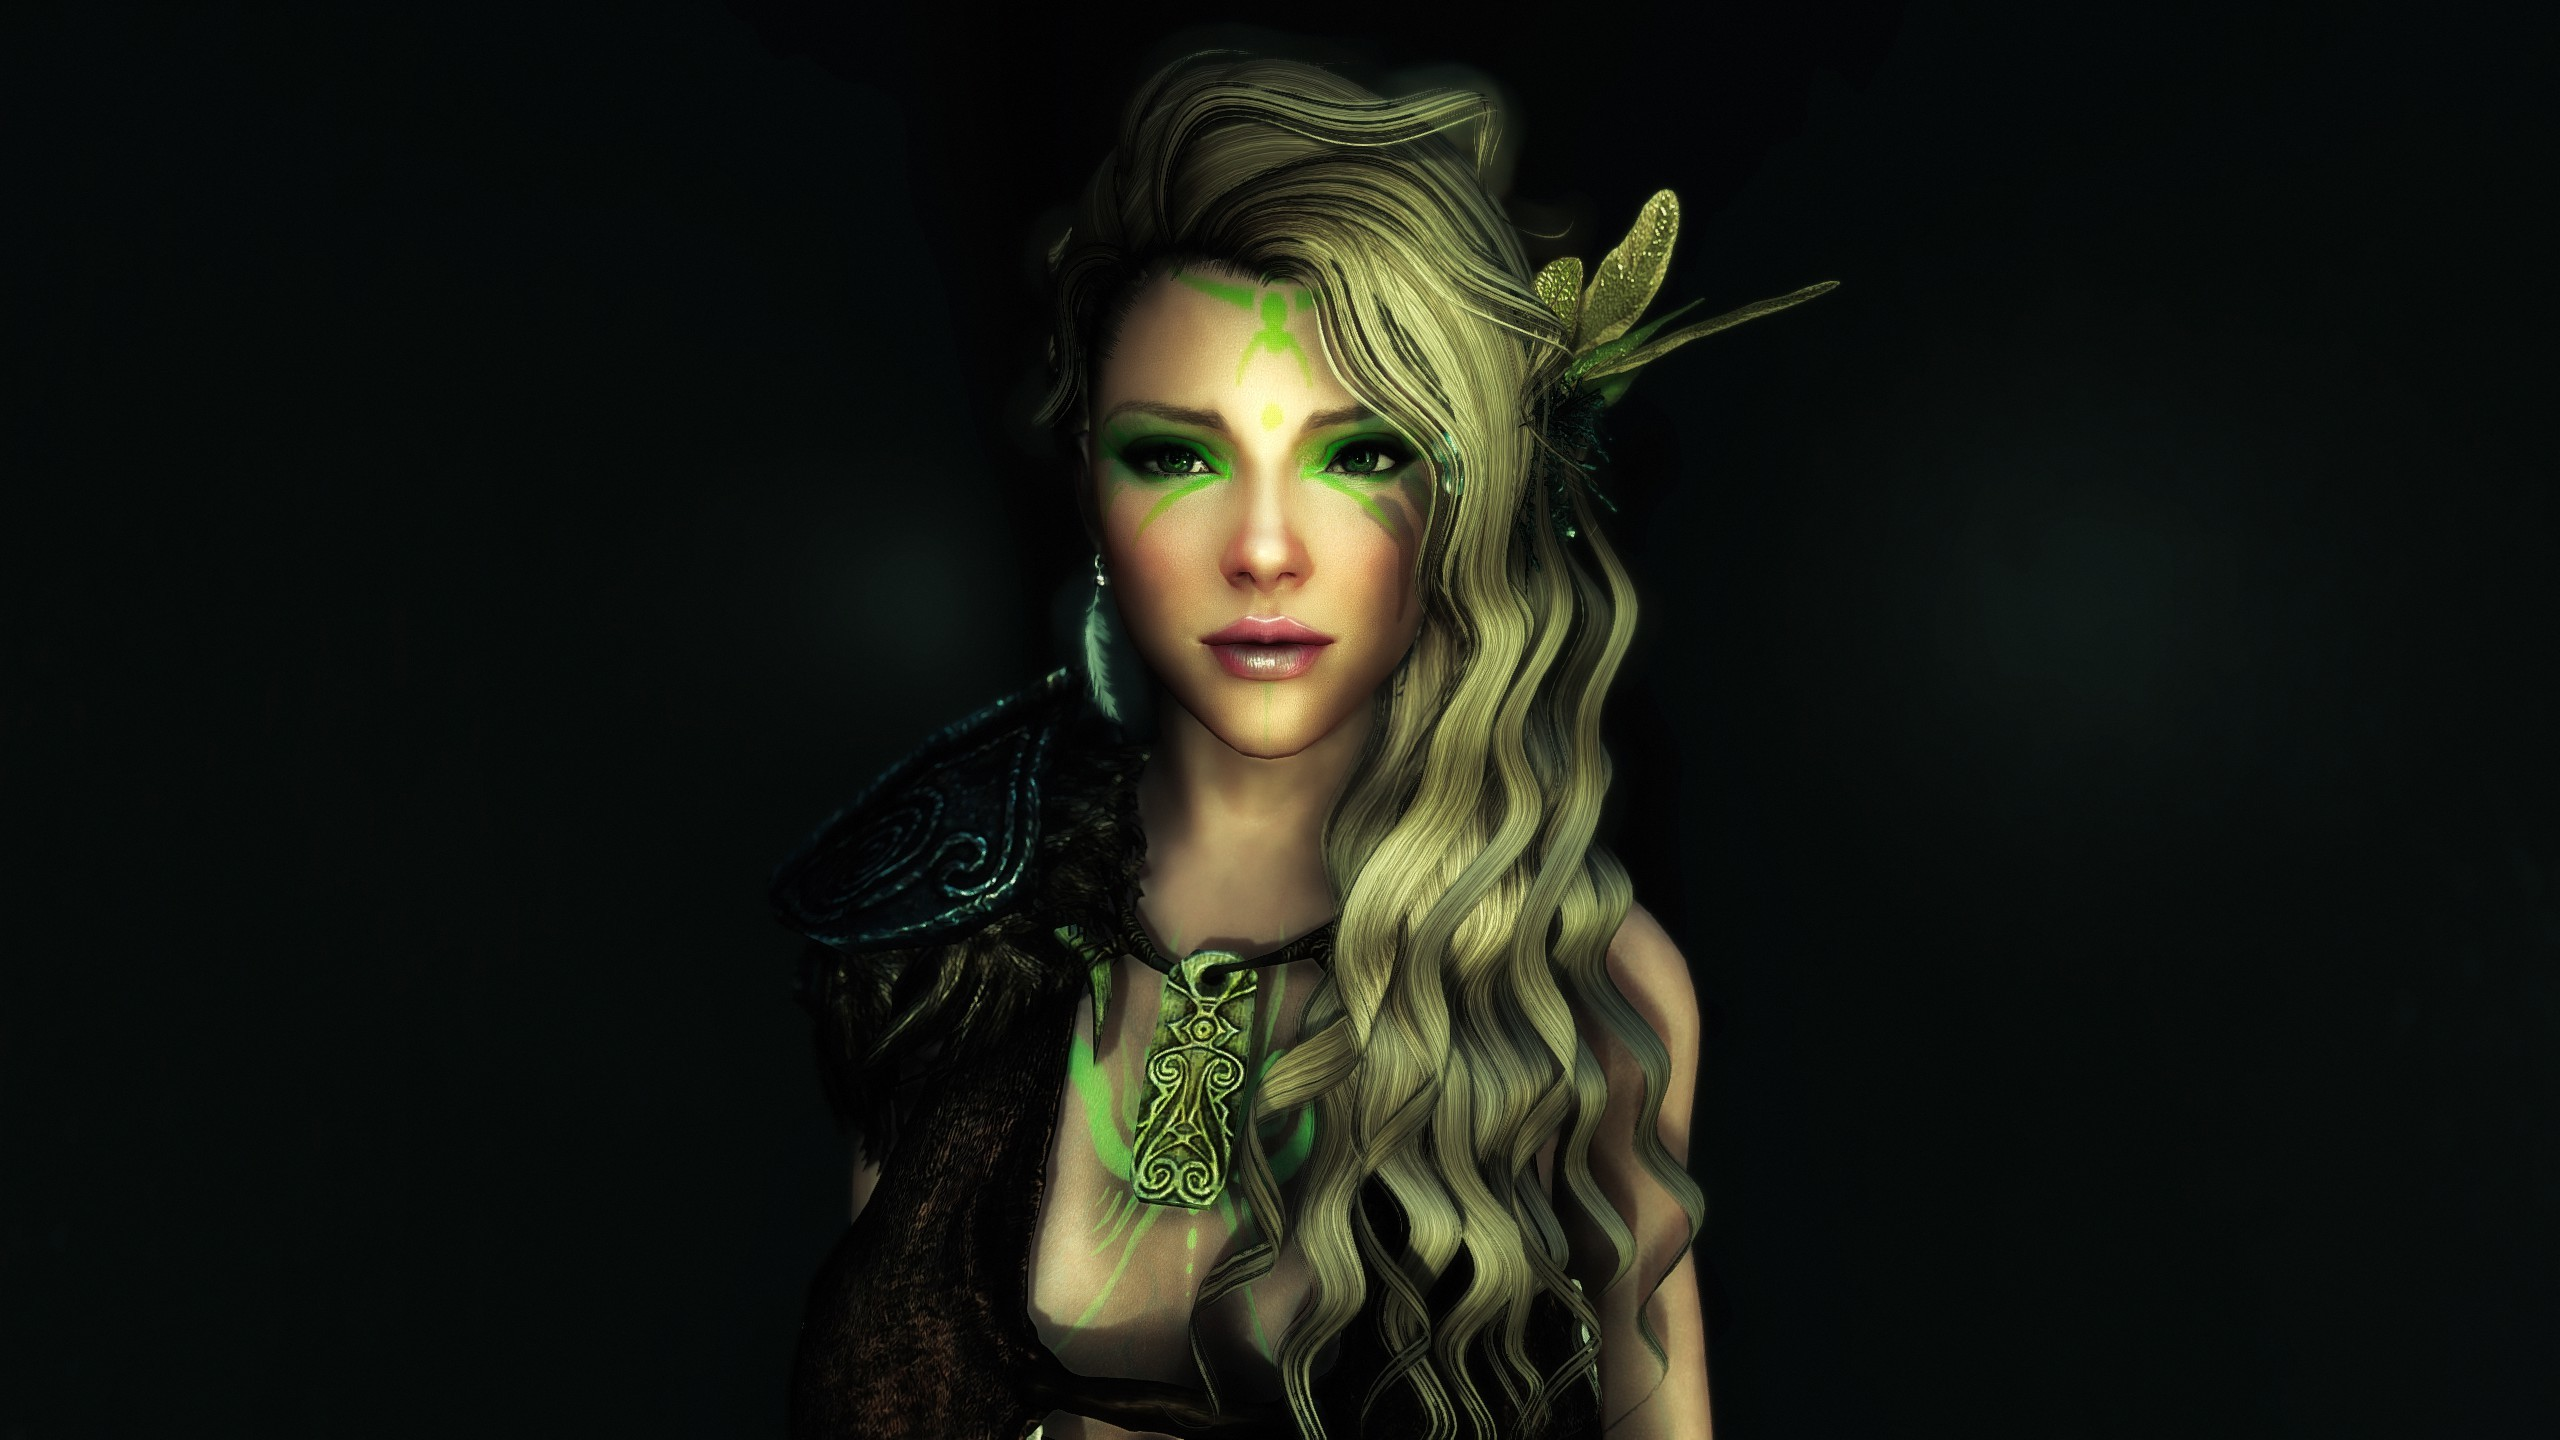 2560x1440 Wallpaper : model, photography, green, fashion, Mod, ENB, Cole, Maija,  liza, Mira, girl, beauty, video, sexy, game, darkness, hot, games, skyrim,  ille, ...